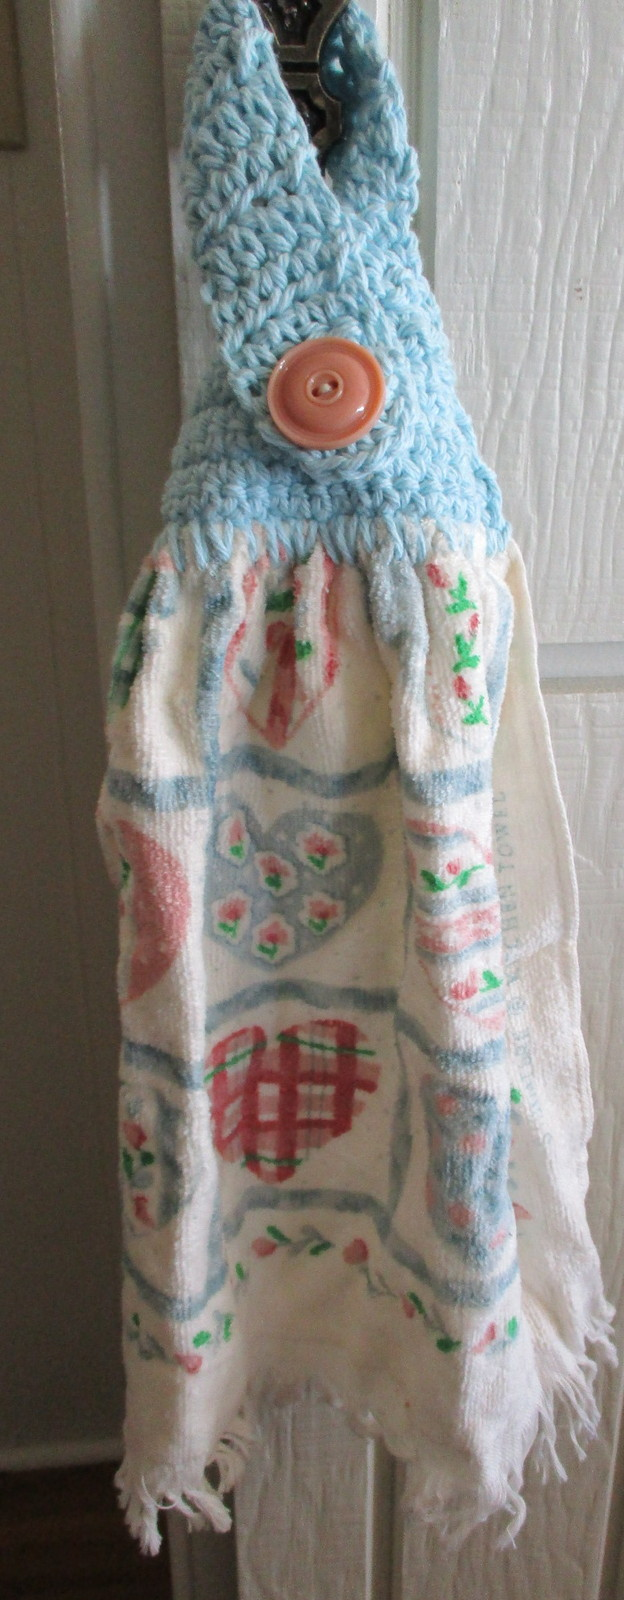 Kitchen Towel with Crocheted Top - Hearts Design